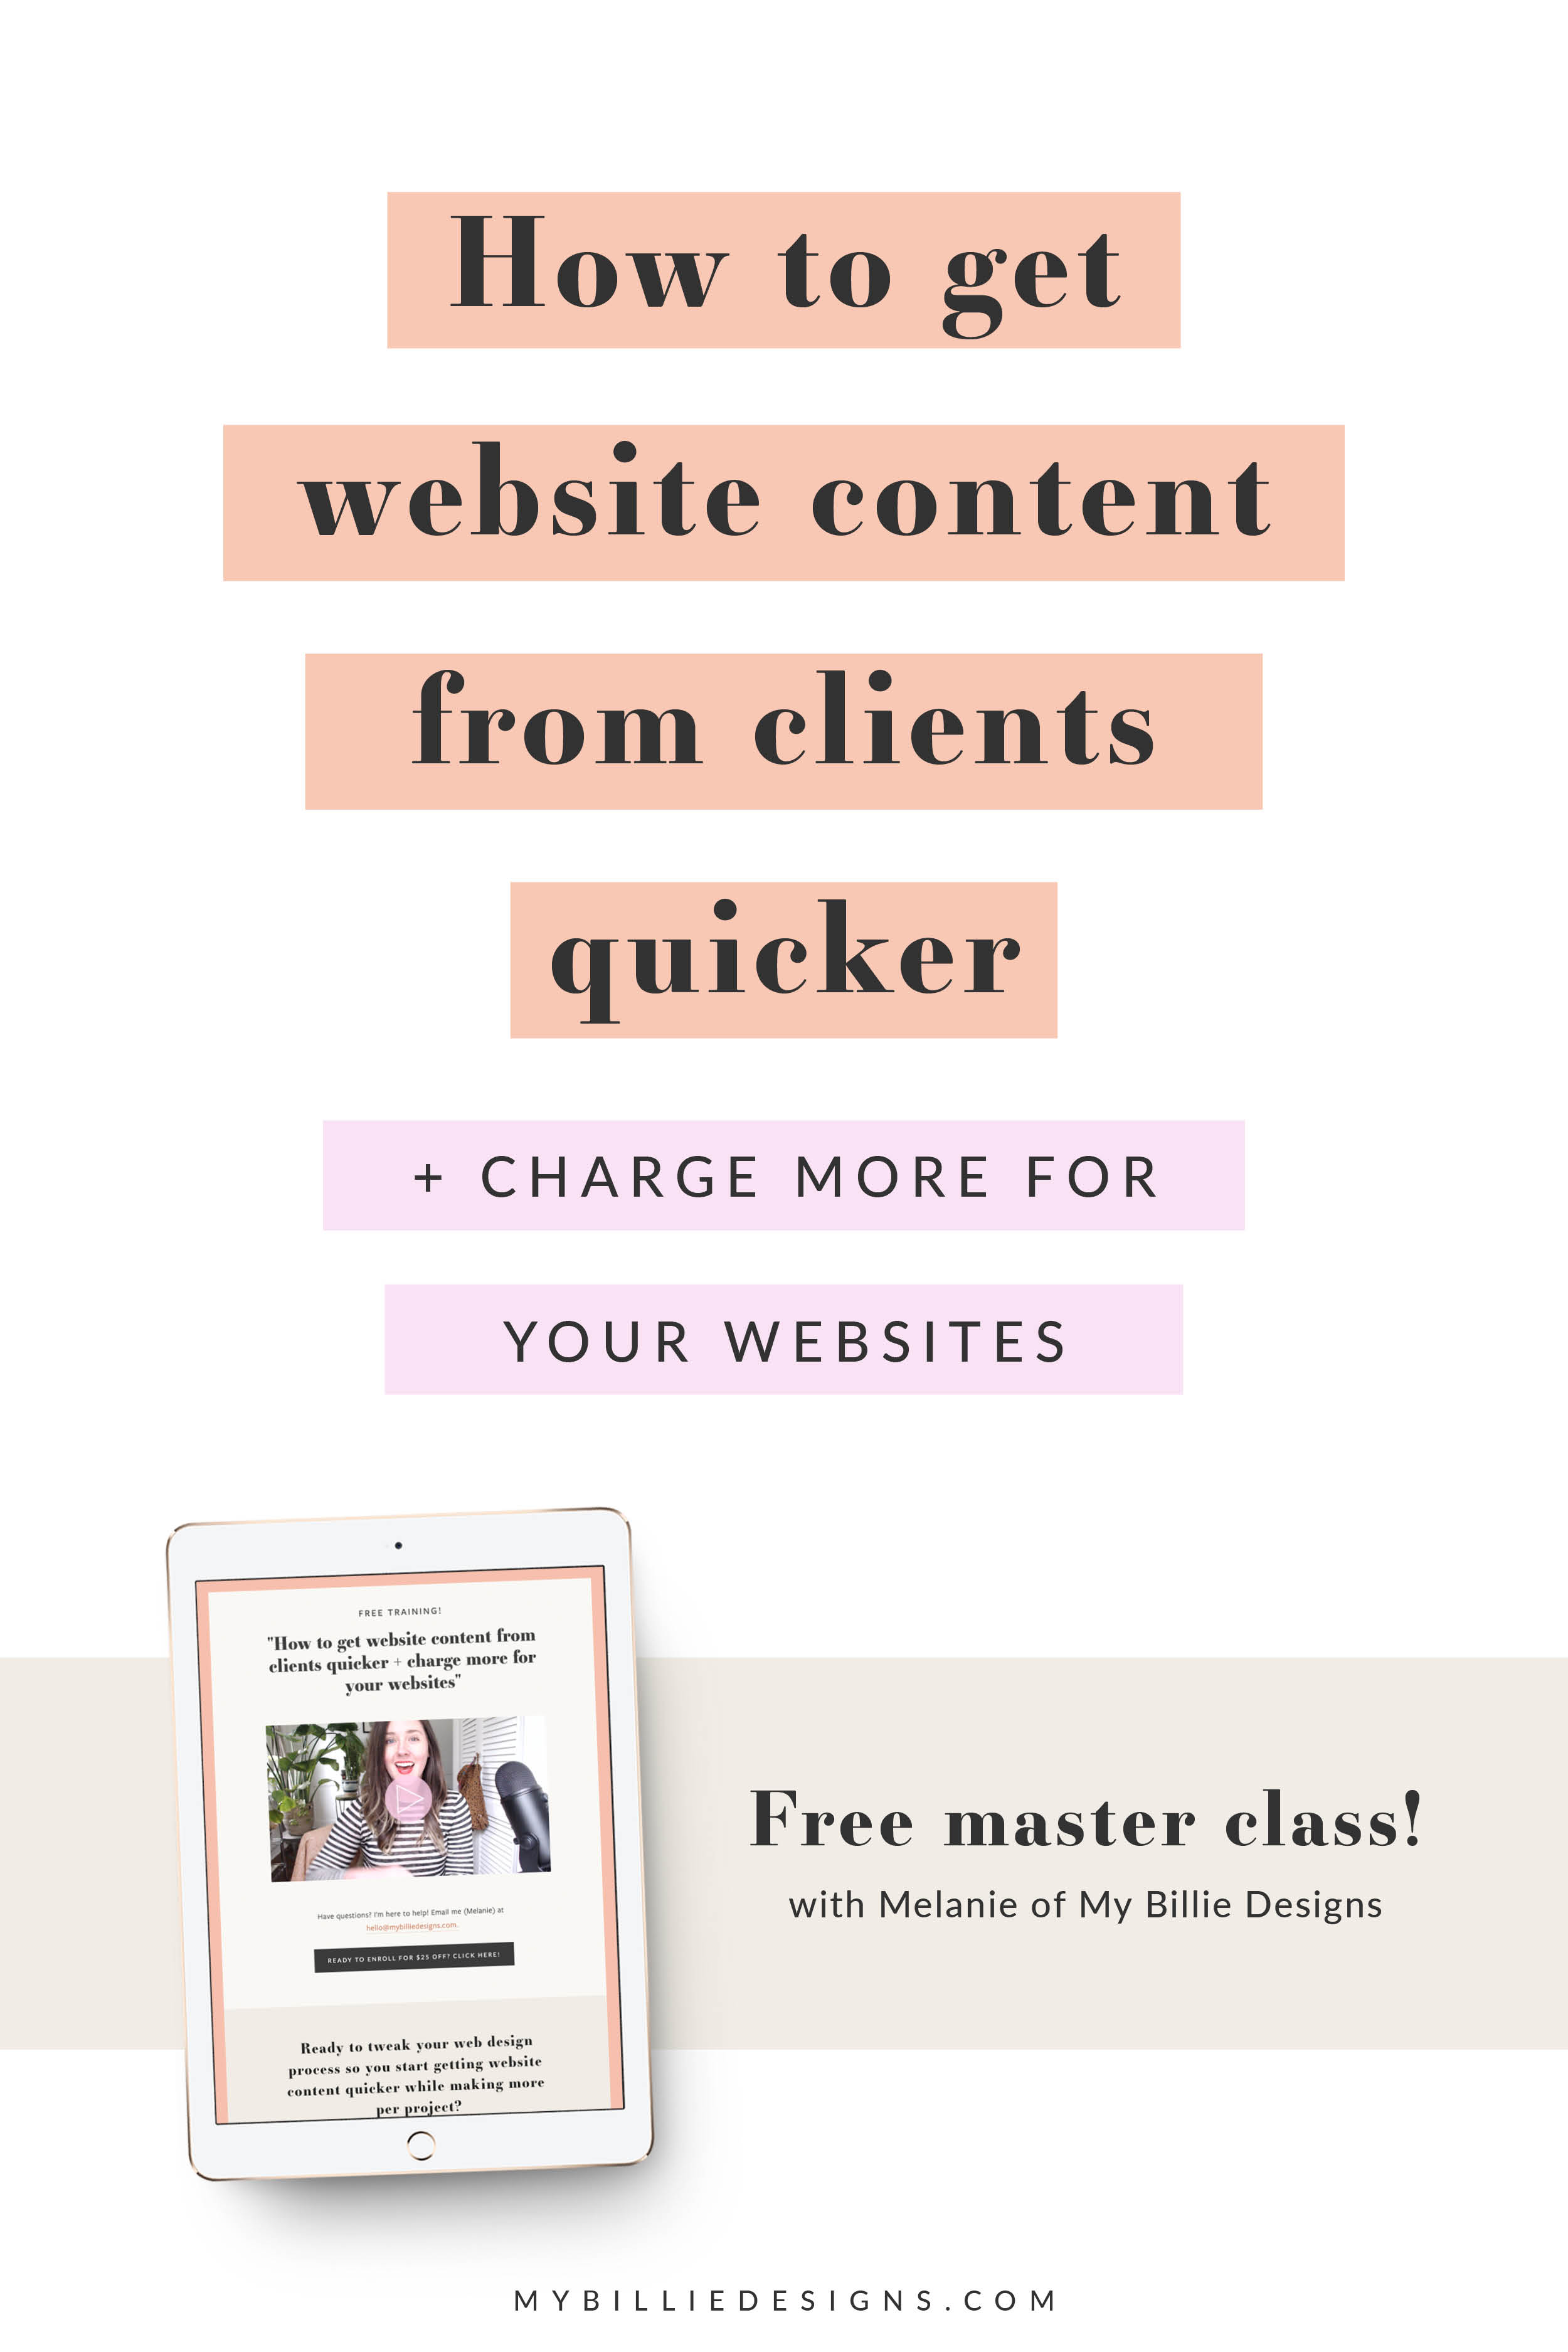 How to get website content from clients quicker + charge more for your websites4.jpg